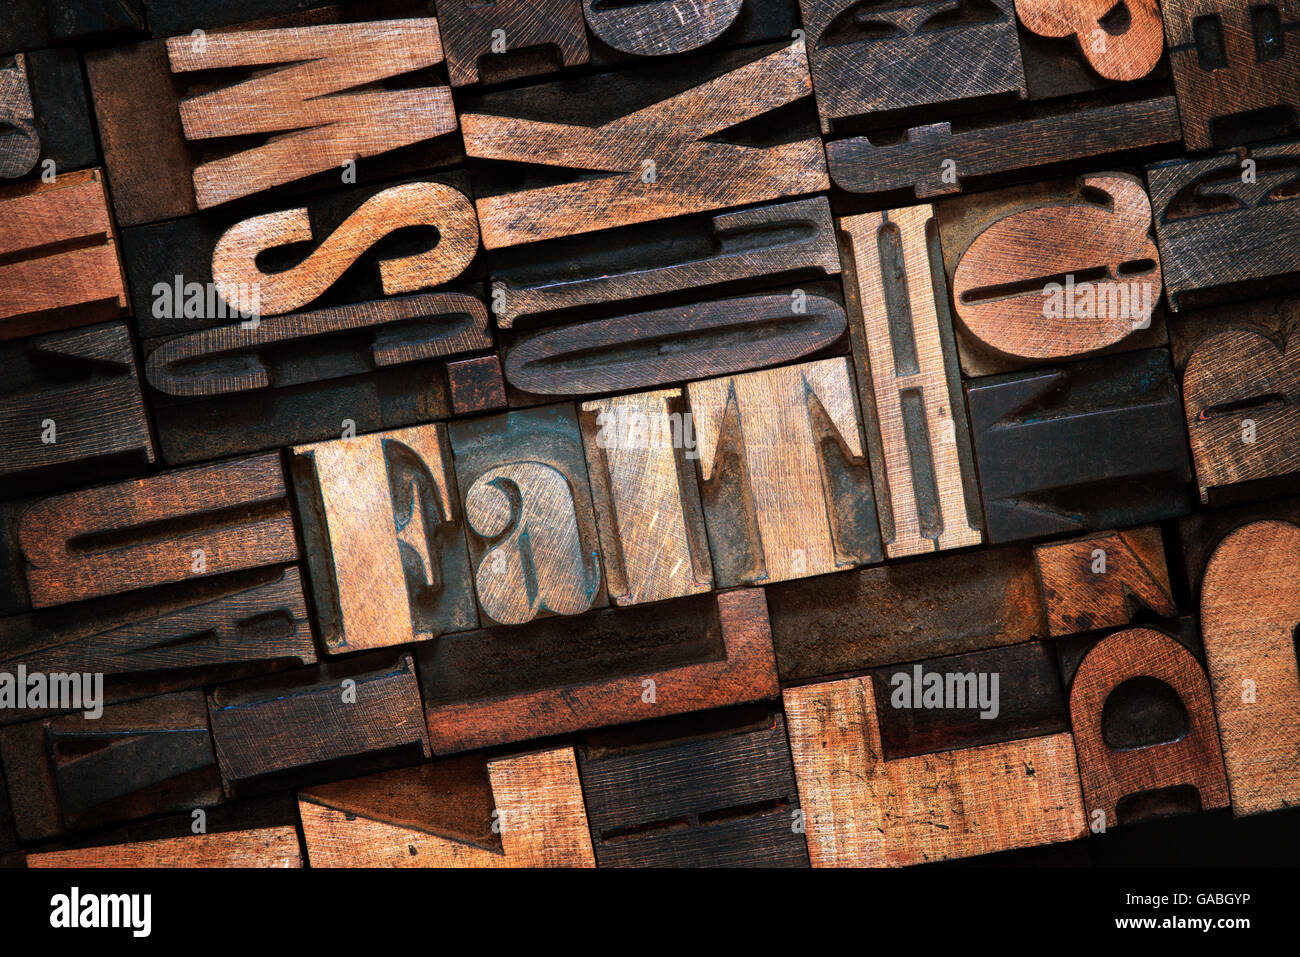 faith word made from wooden letterpress blocks inside many letters background - Stock Image